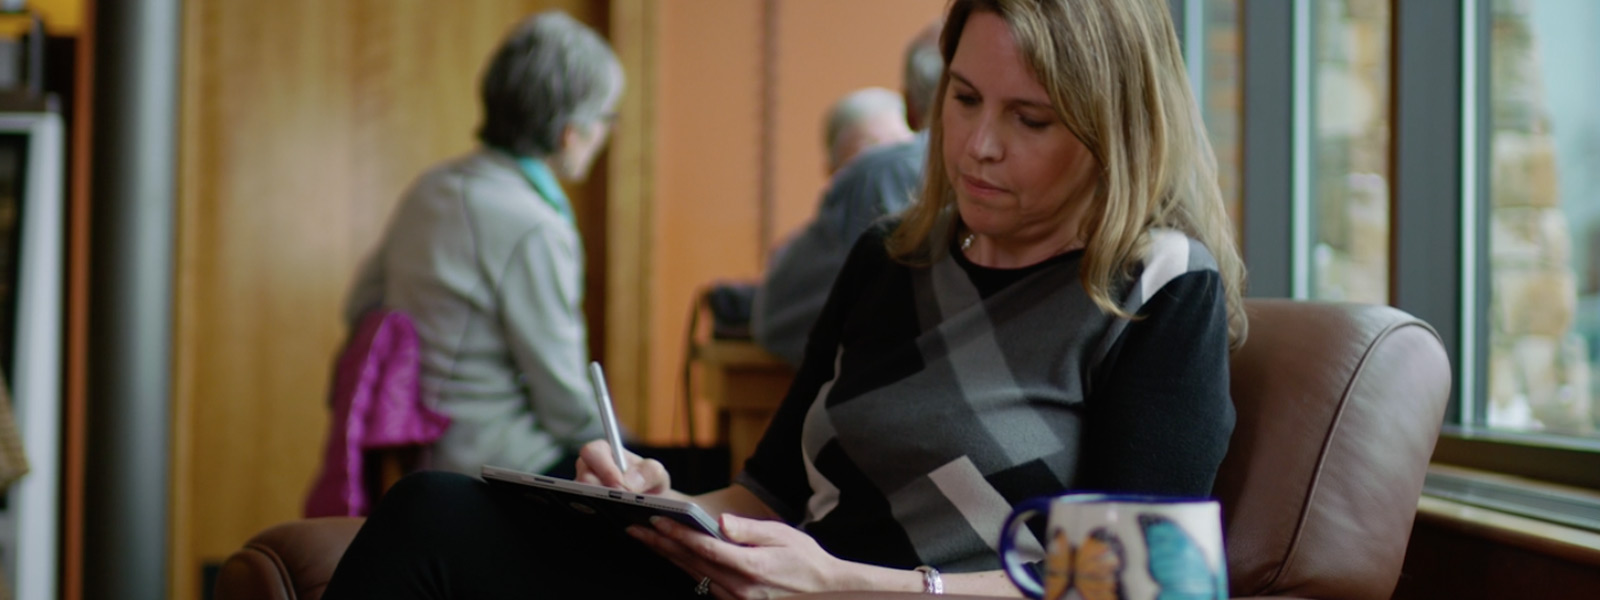 Kathryn Pedersen uses touchscreen on a Surface Pro 4.